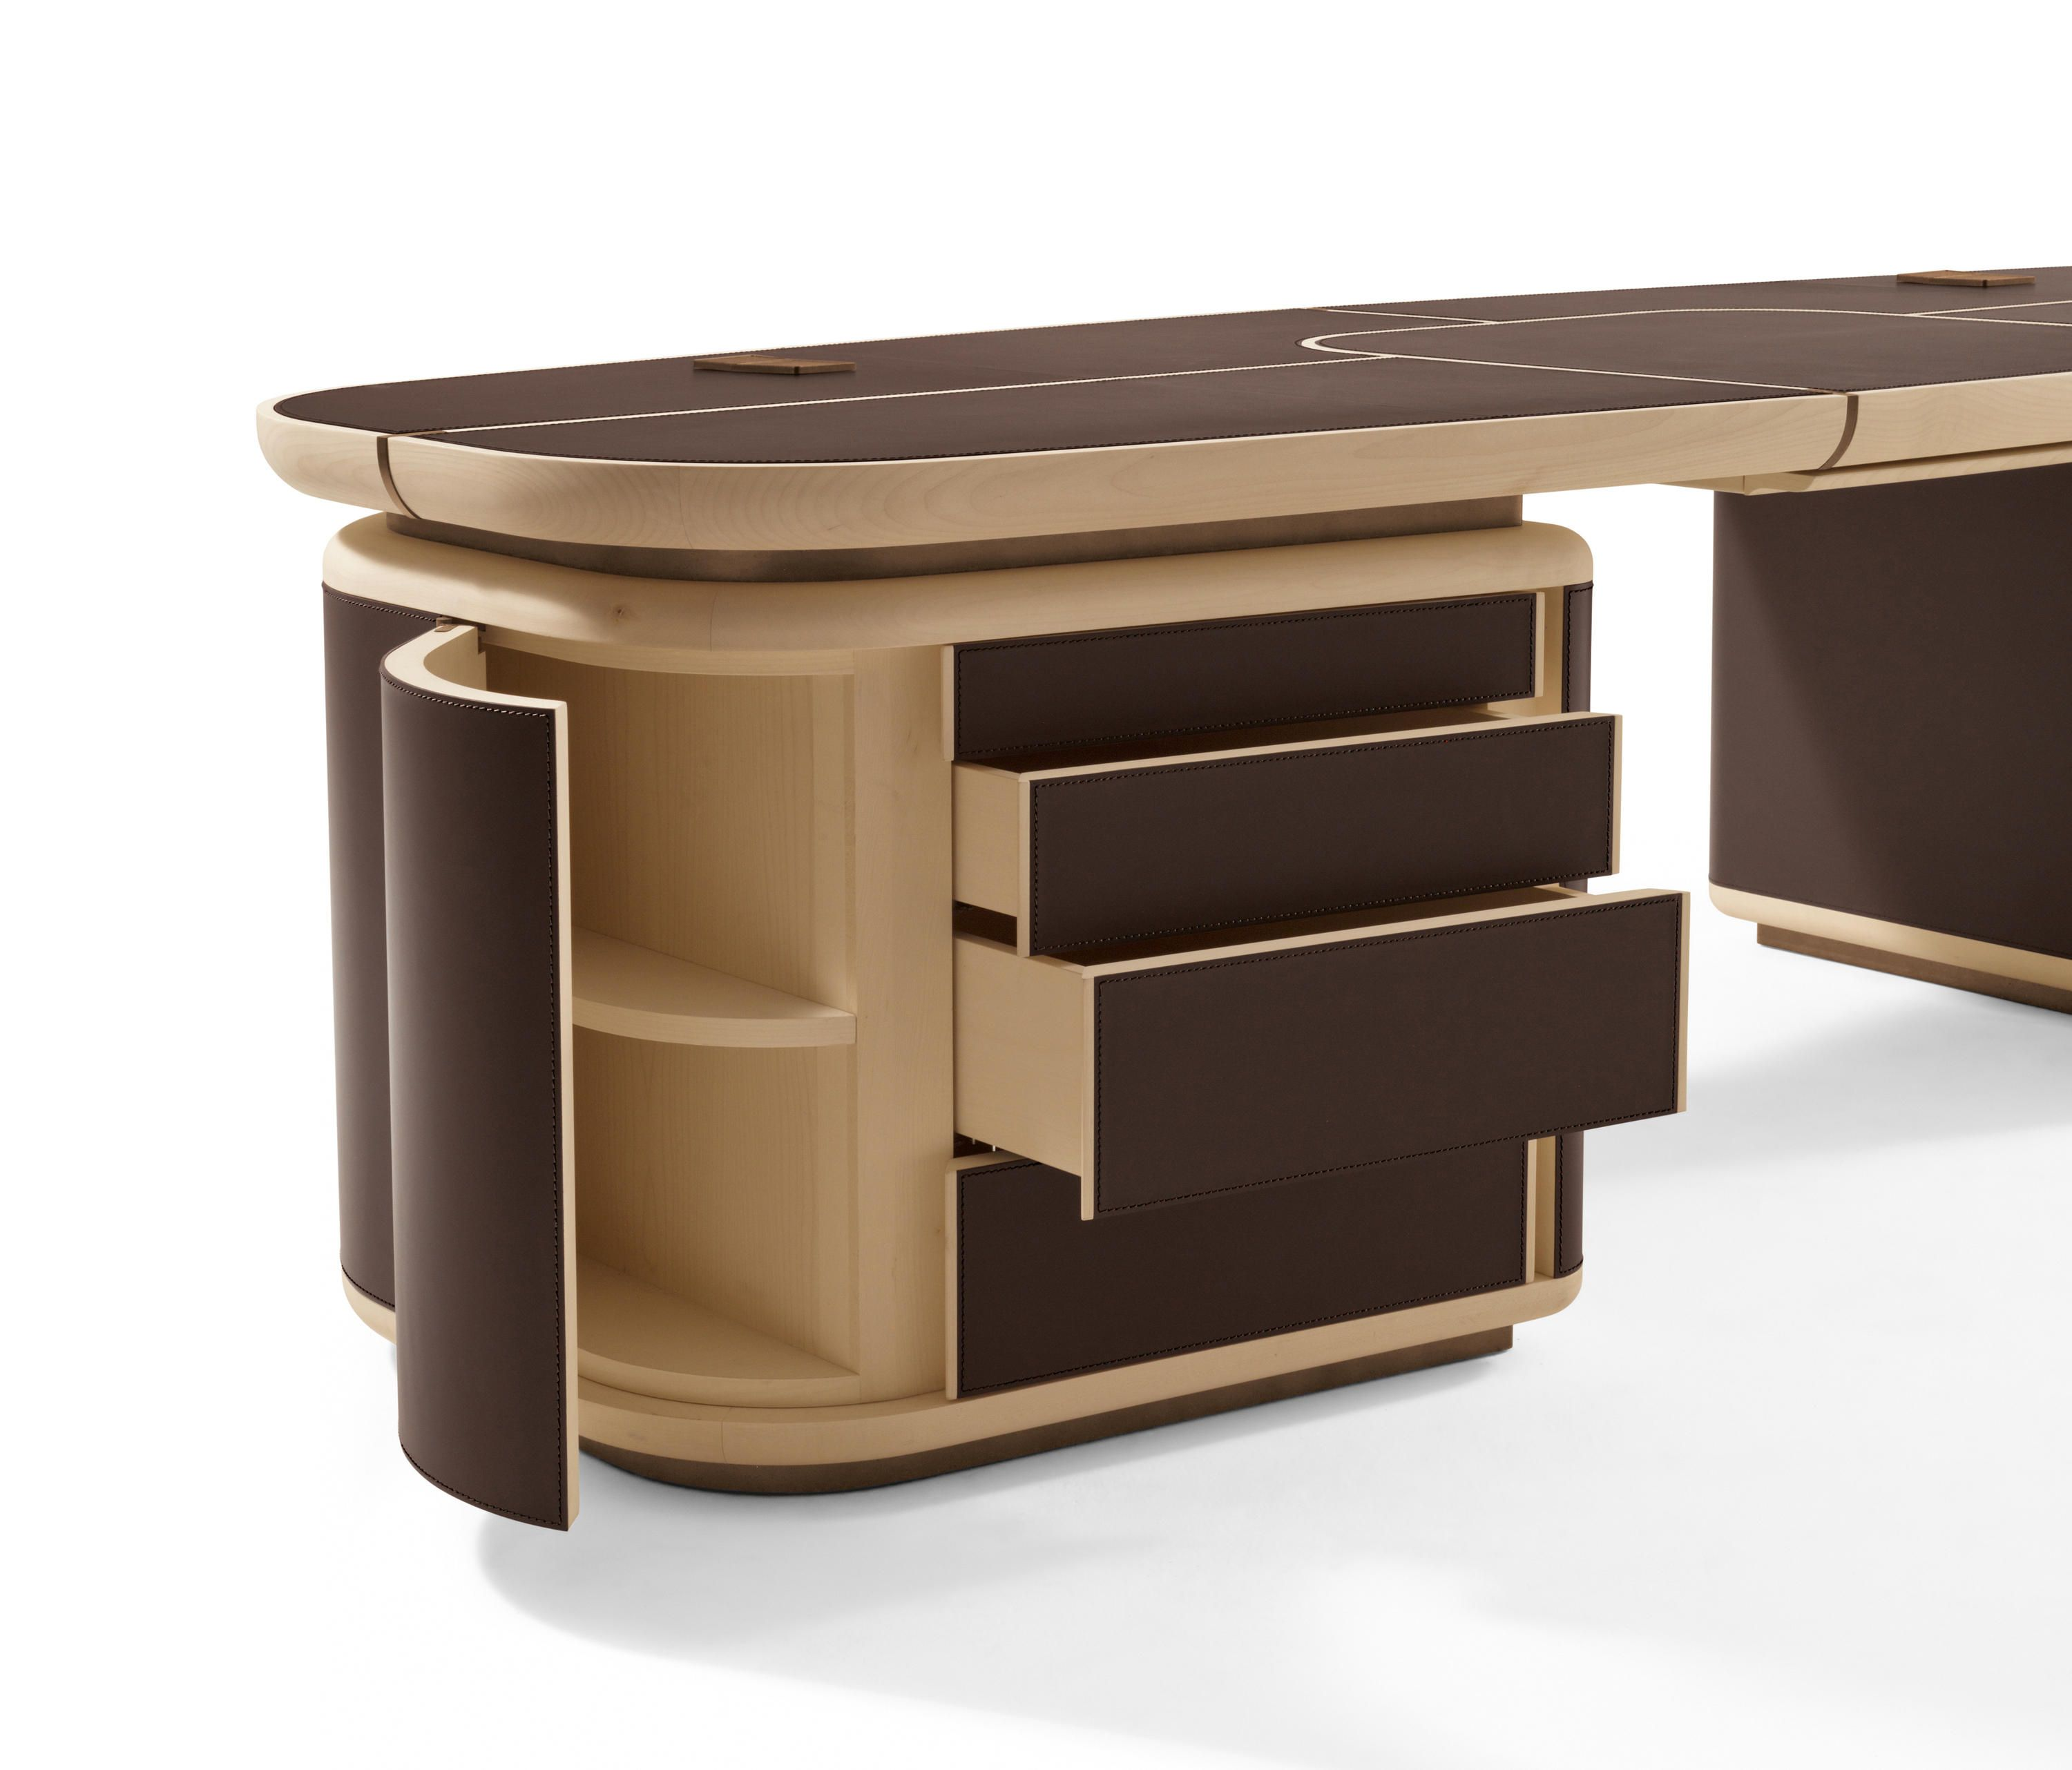 tycoon executive desk by giorgetti executive desks meuble tele bureaux chaises chambre